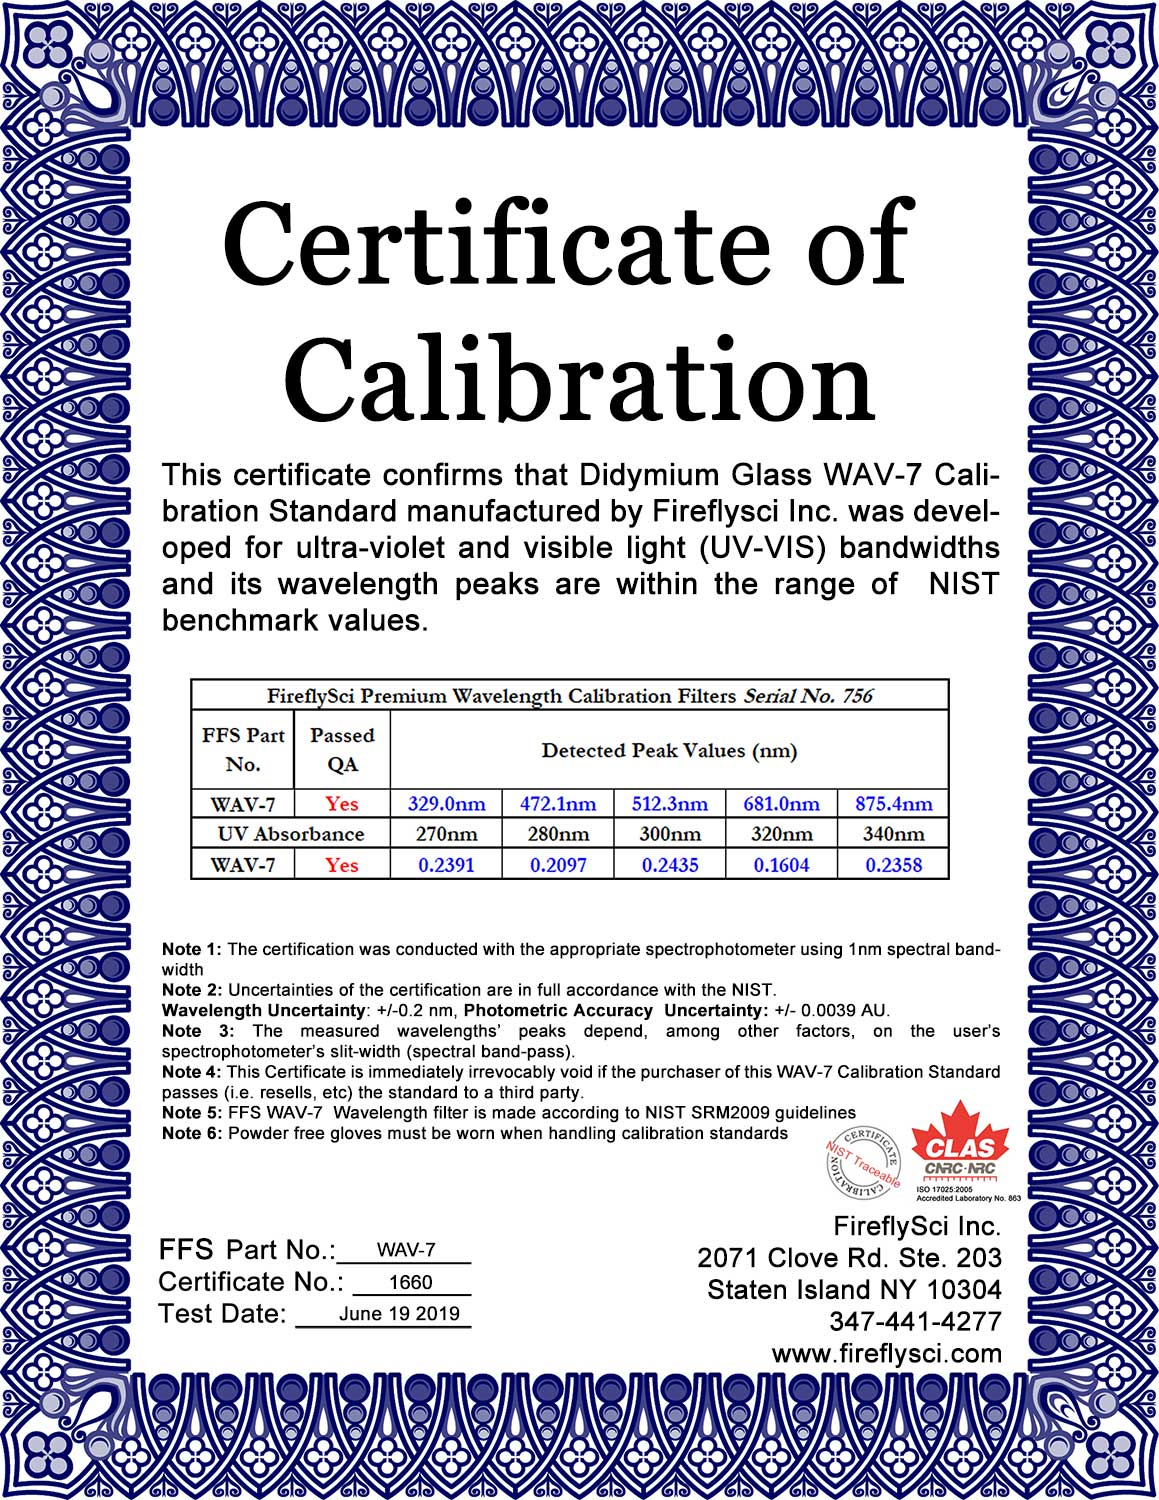 SAMPLE WAV-7 UV/VIS CERTIFICATE OF CALIBRATION